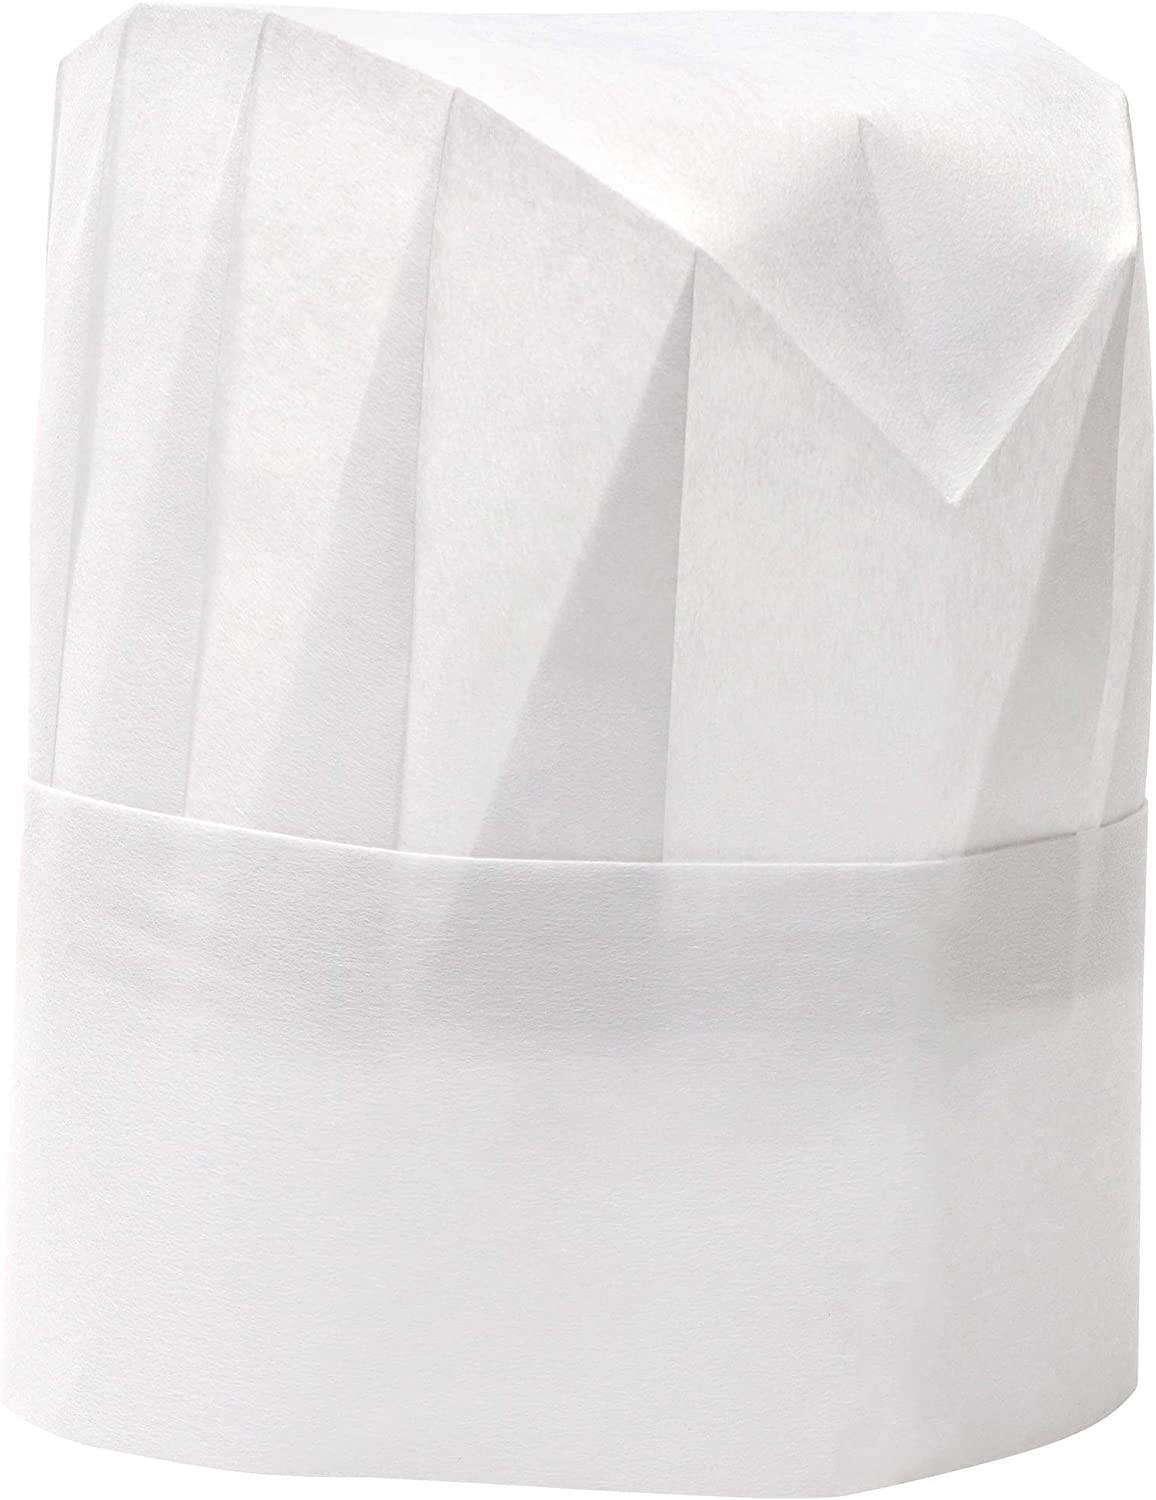 Juvale Kids Tall Paper Chef Hats (48 Pack) Adjustable Size White